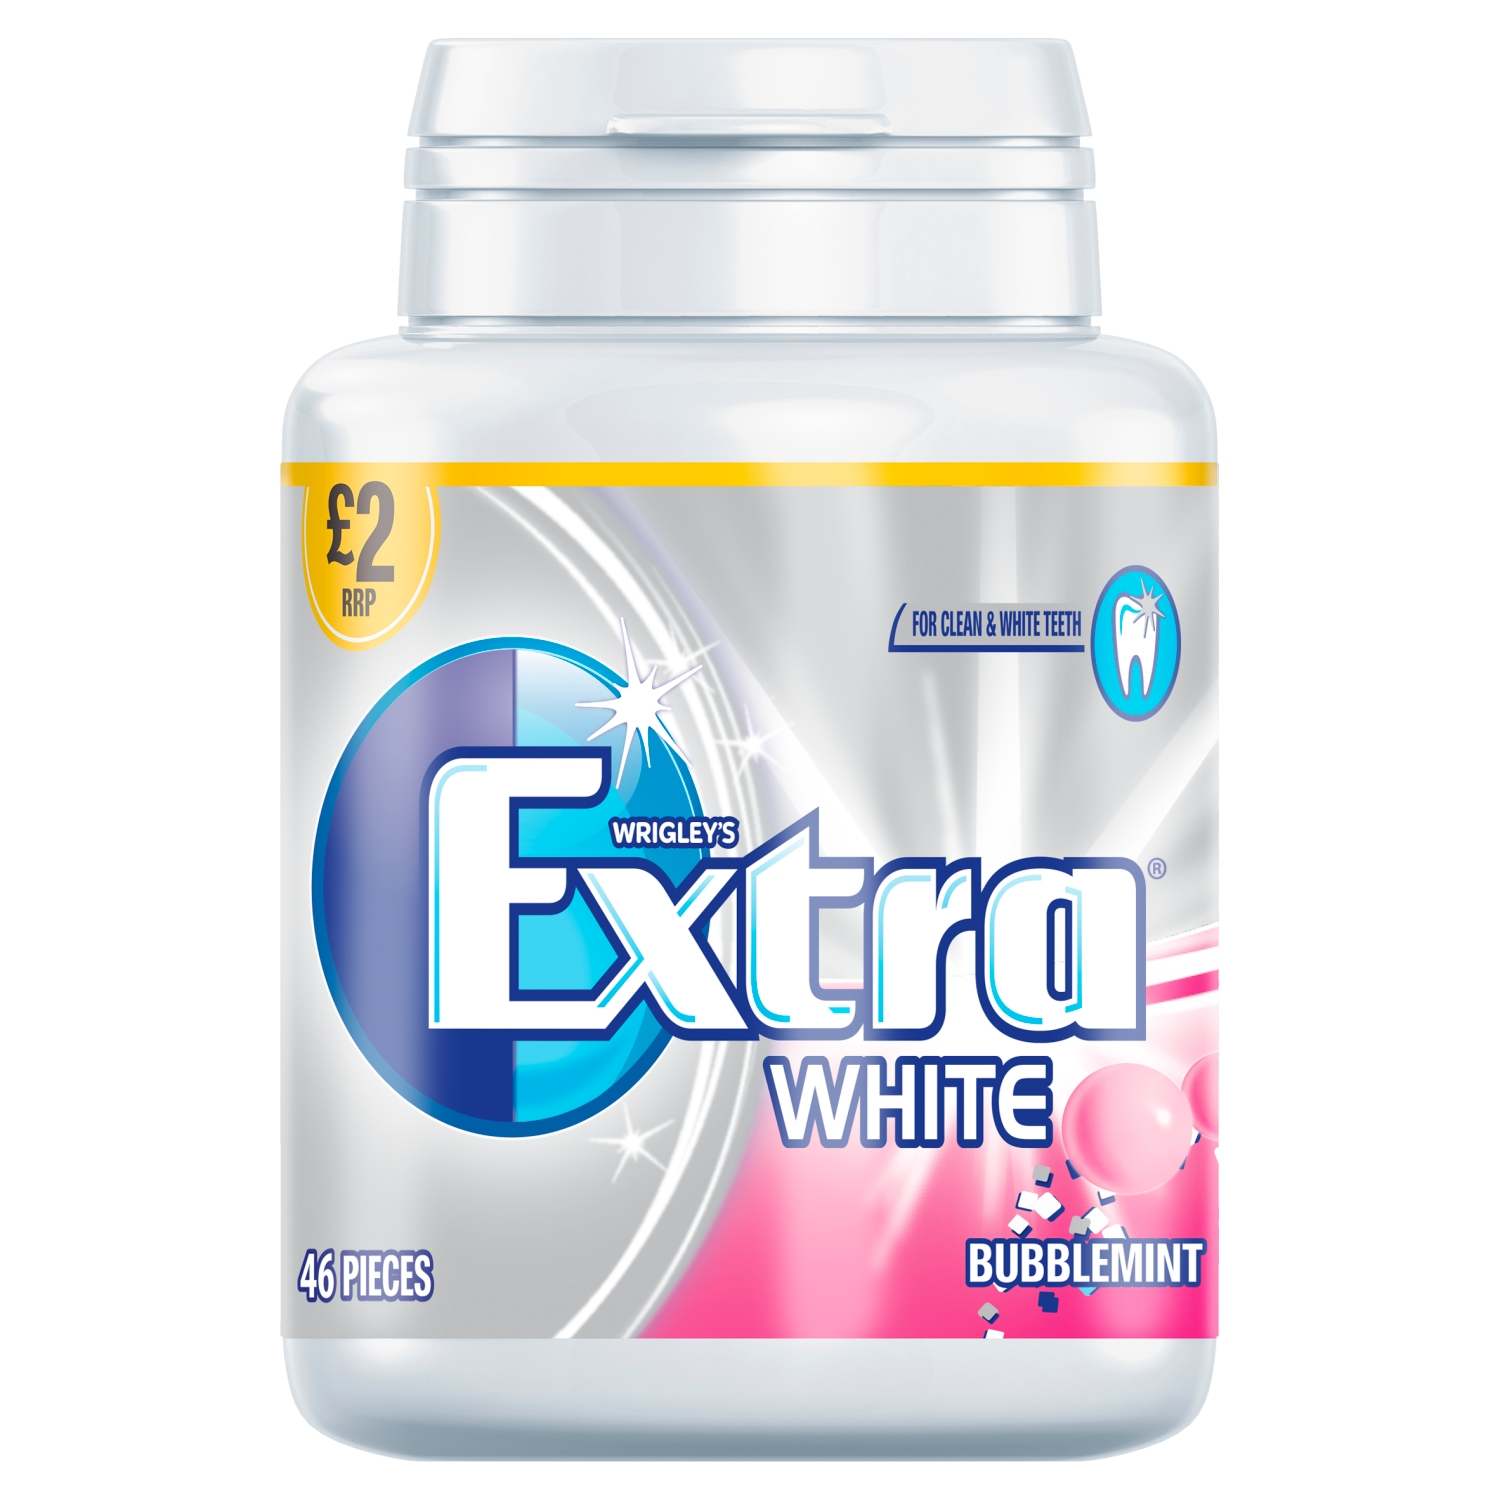 Wrigley's Extra White Bubblemint 46 Pieces 64g